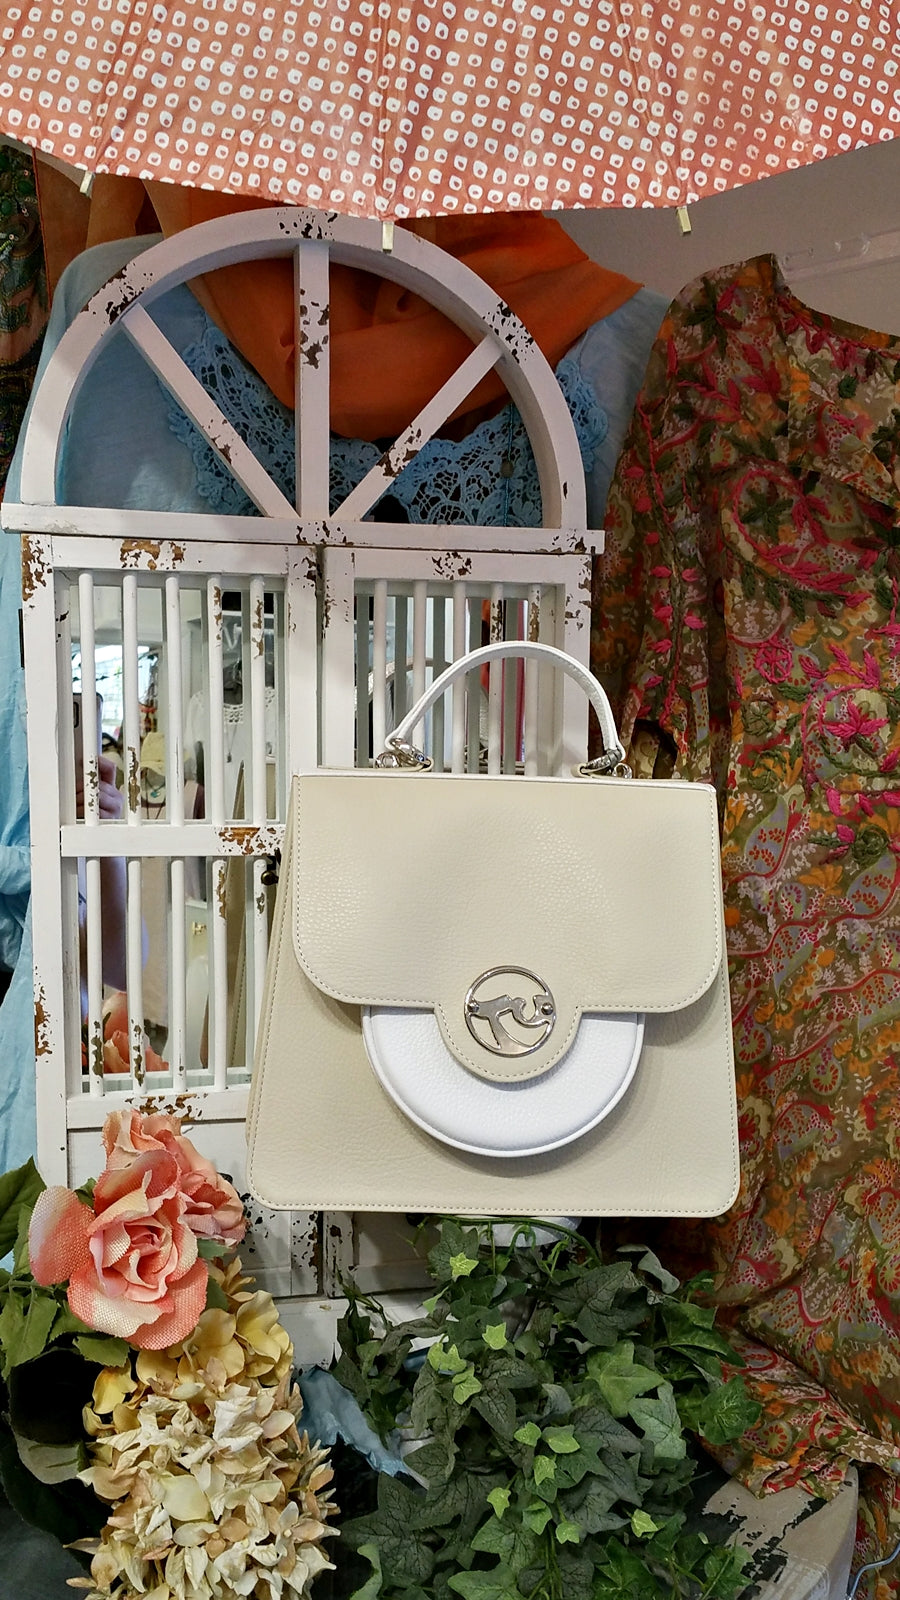 TUCHIC SMALL BAG BEIGE LEATHER